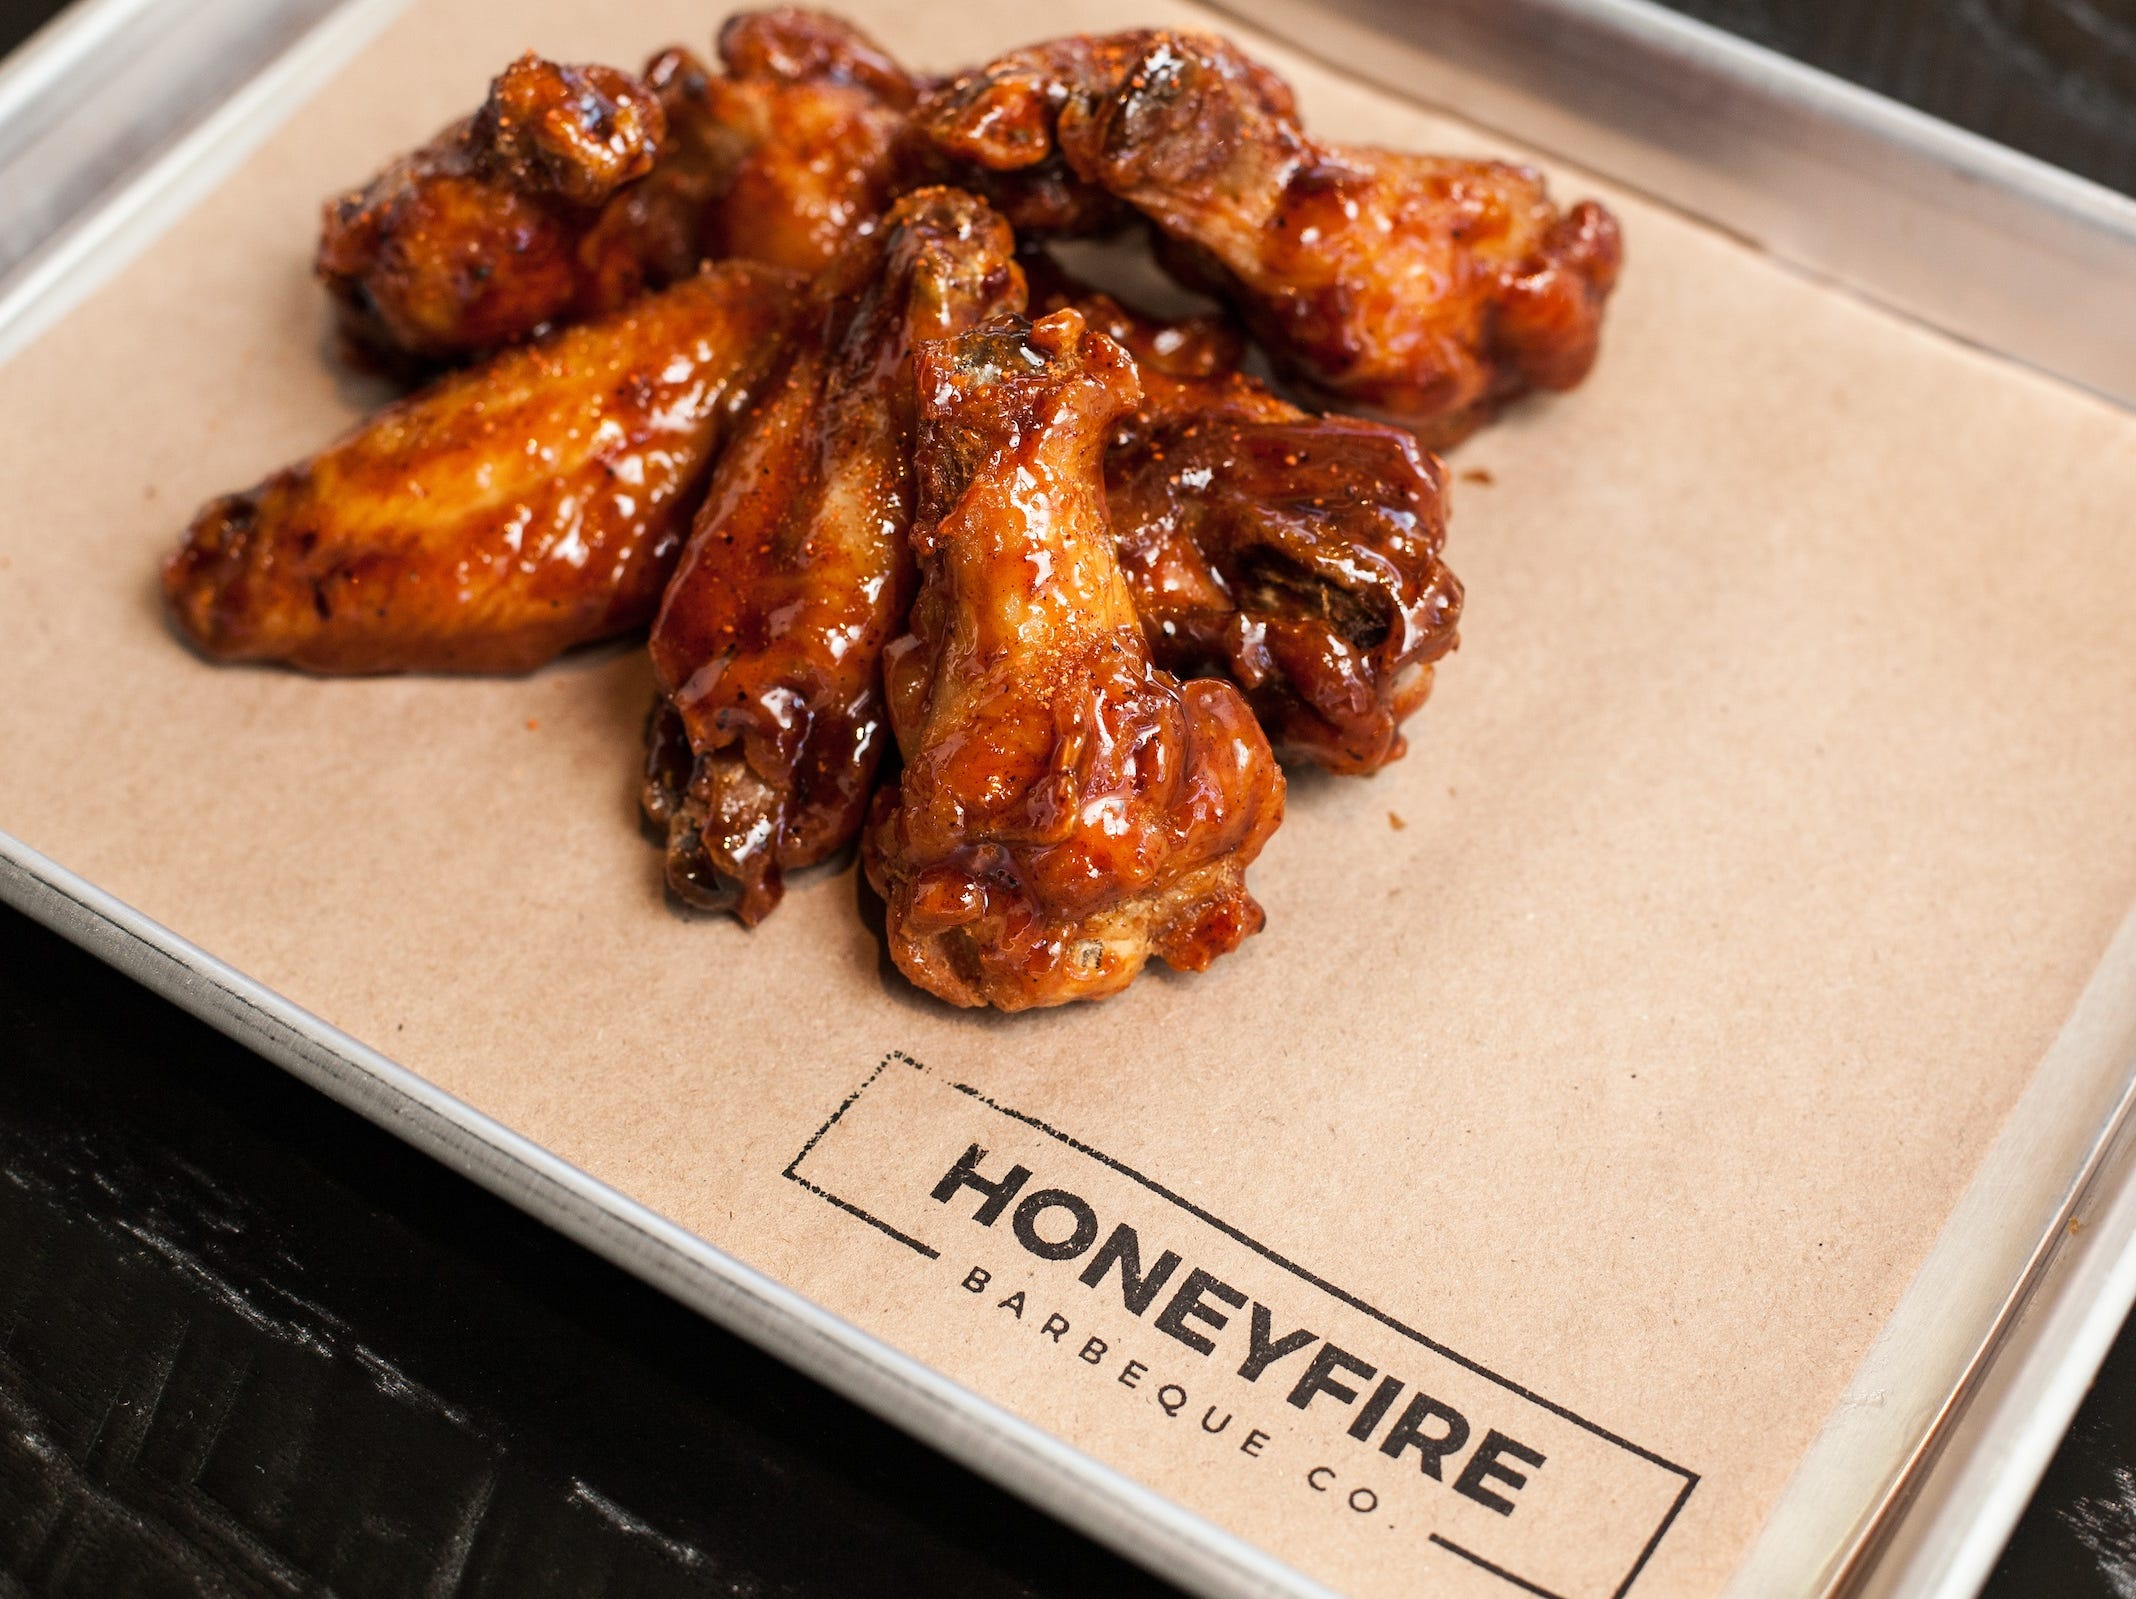 Competition pitmaster opens HoneyFire Barbeque in Bellevue